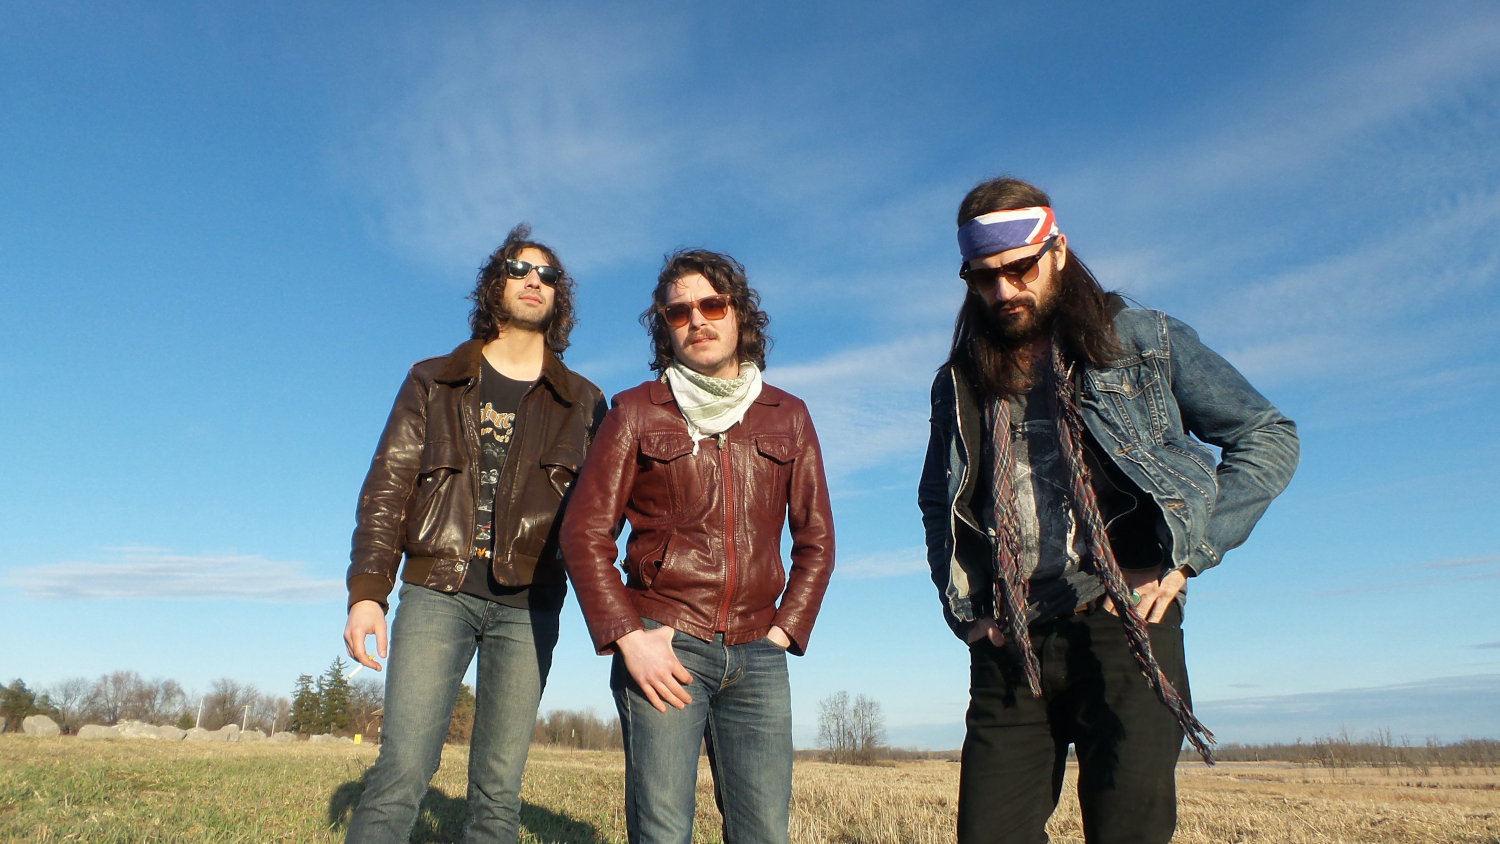 Handsome Jack plays Des Konings Trio in April